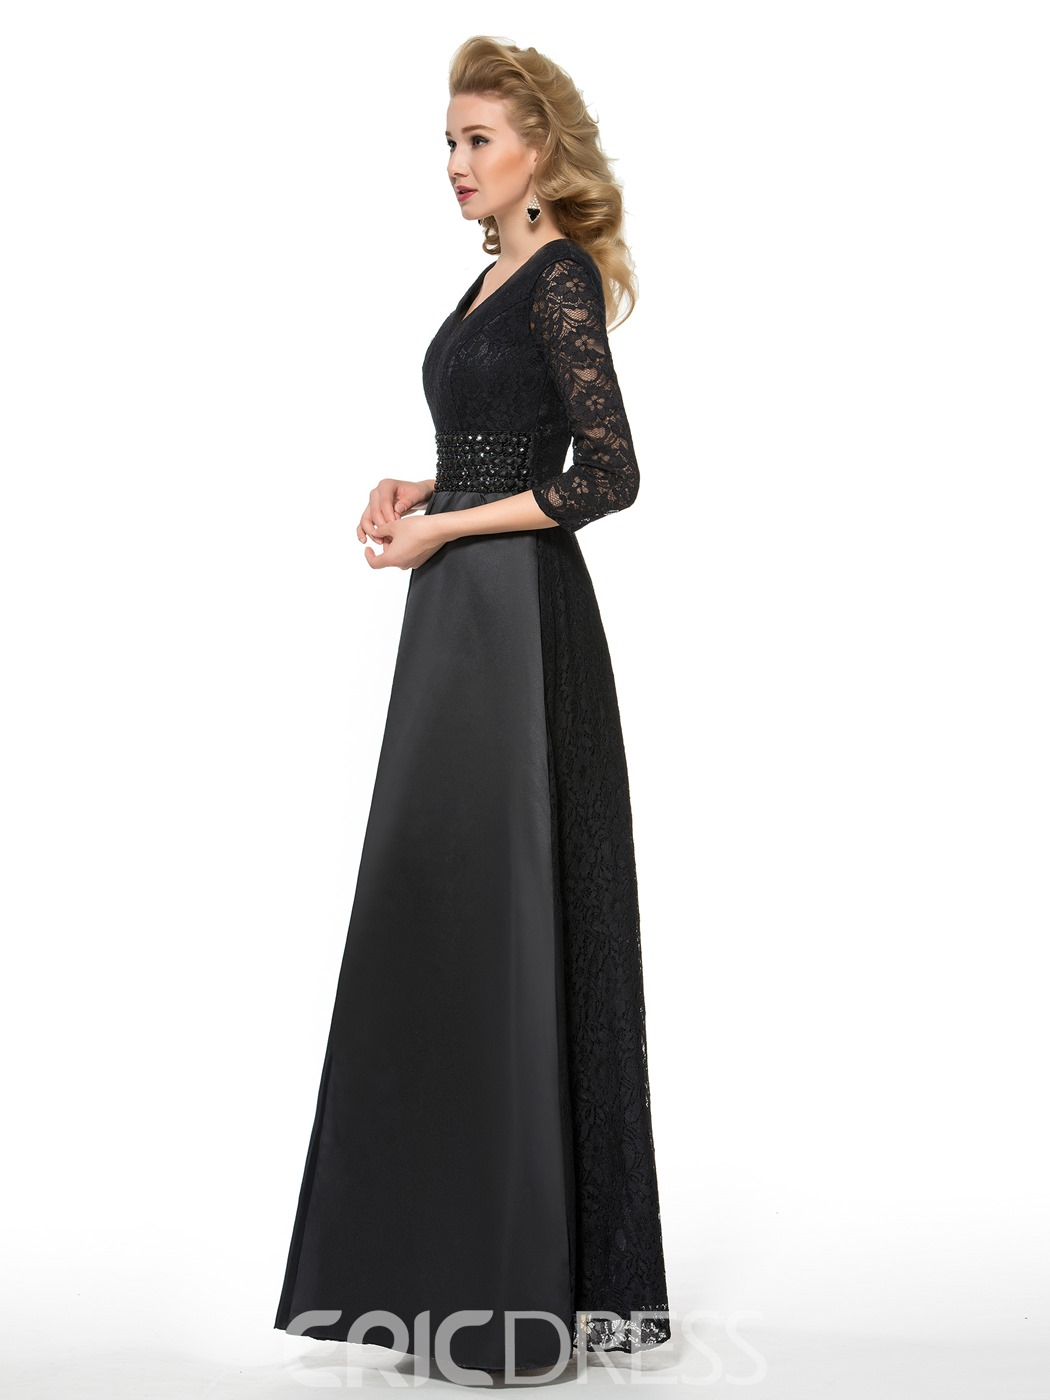 Ericdress Long A Line V Neck 3/4 Length Sleeves Mother of the Bride Dress